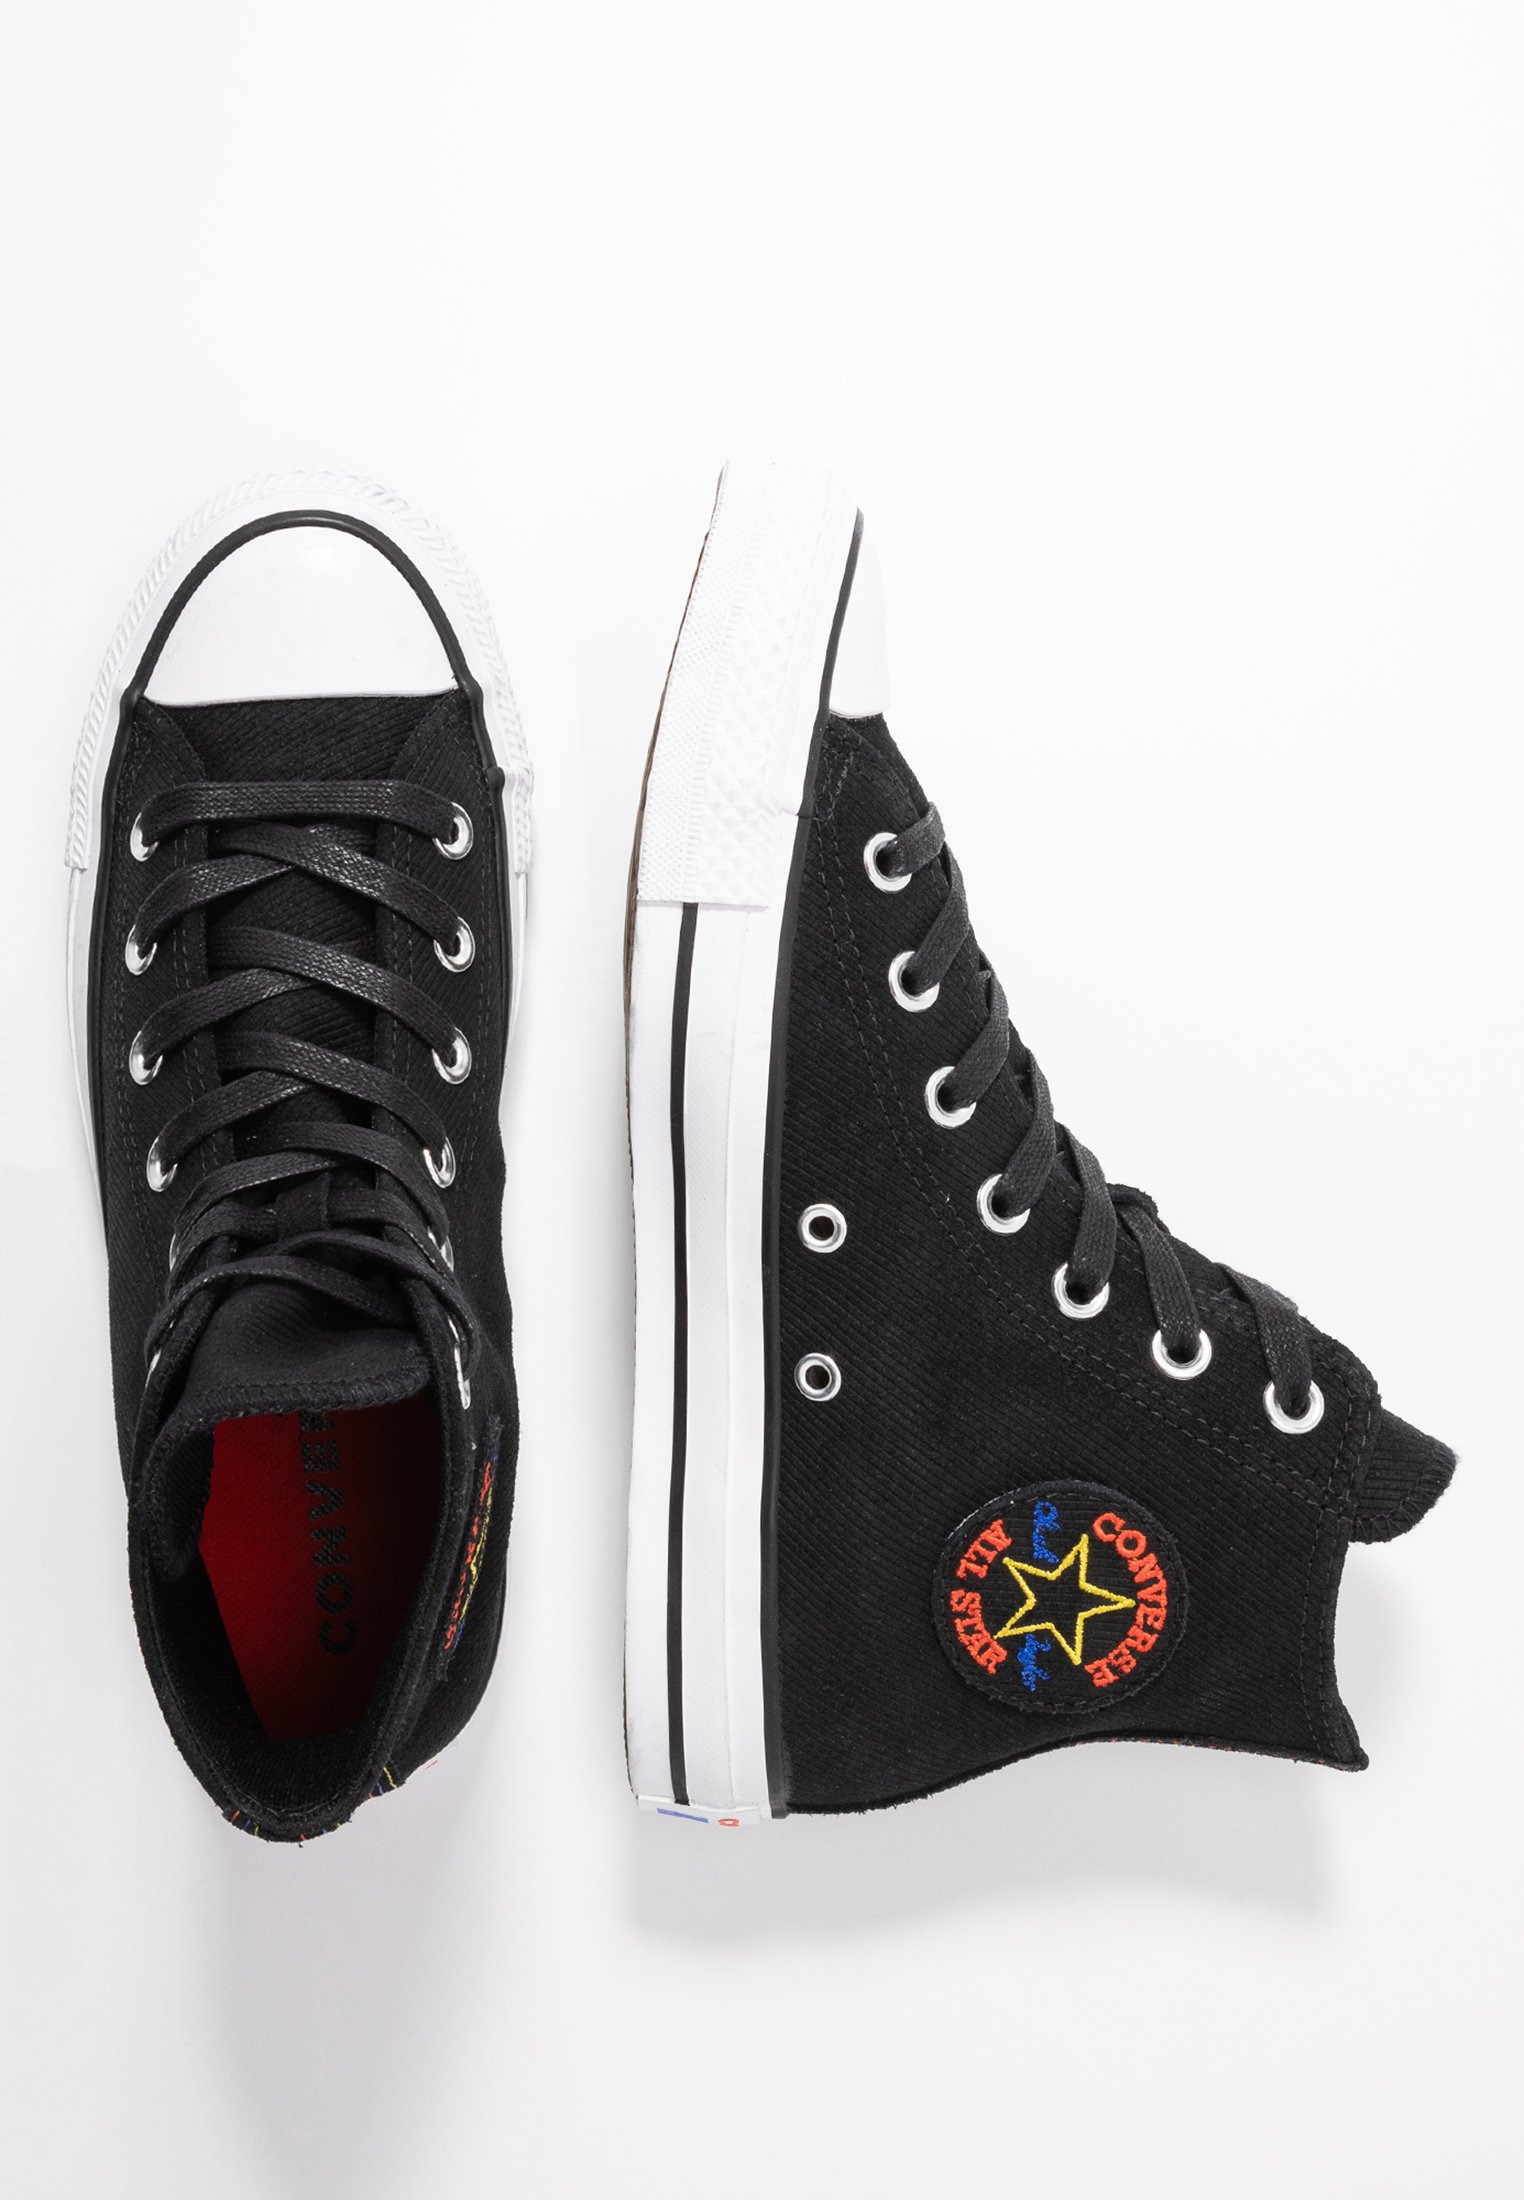 Converse CHUCK TAYLOR ALL STAR RETROGRADE - Sneakers high - black/habanero red/white i5PAW